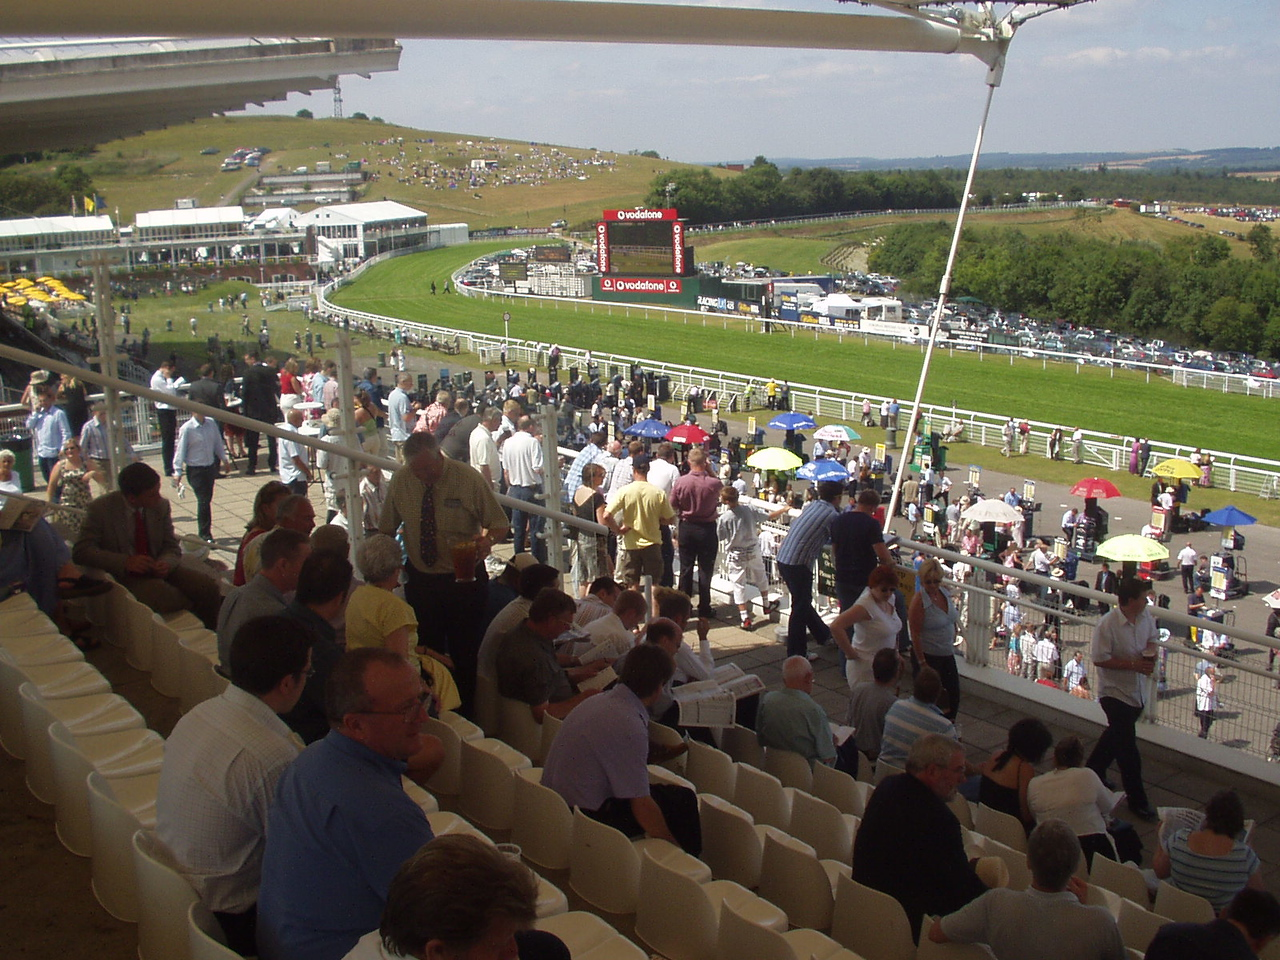 The Sussex Stand